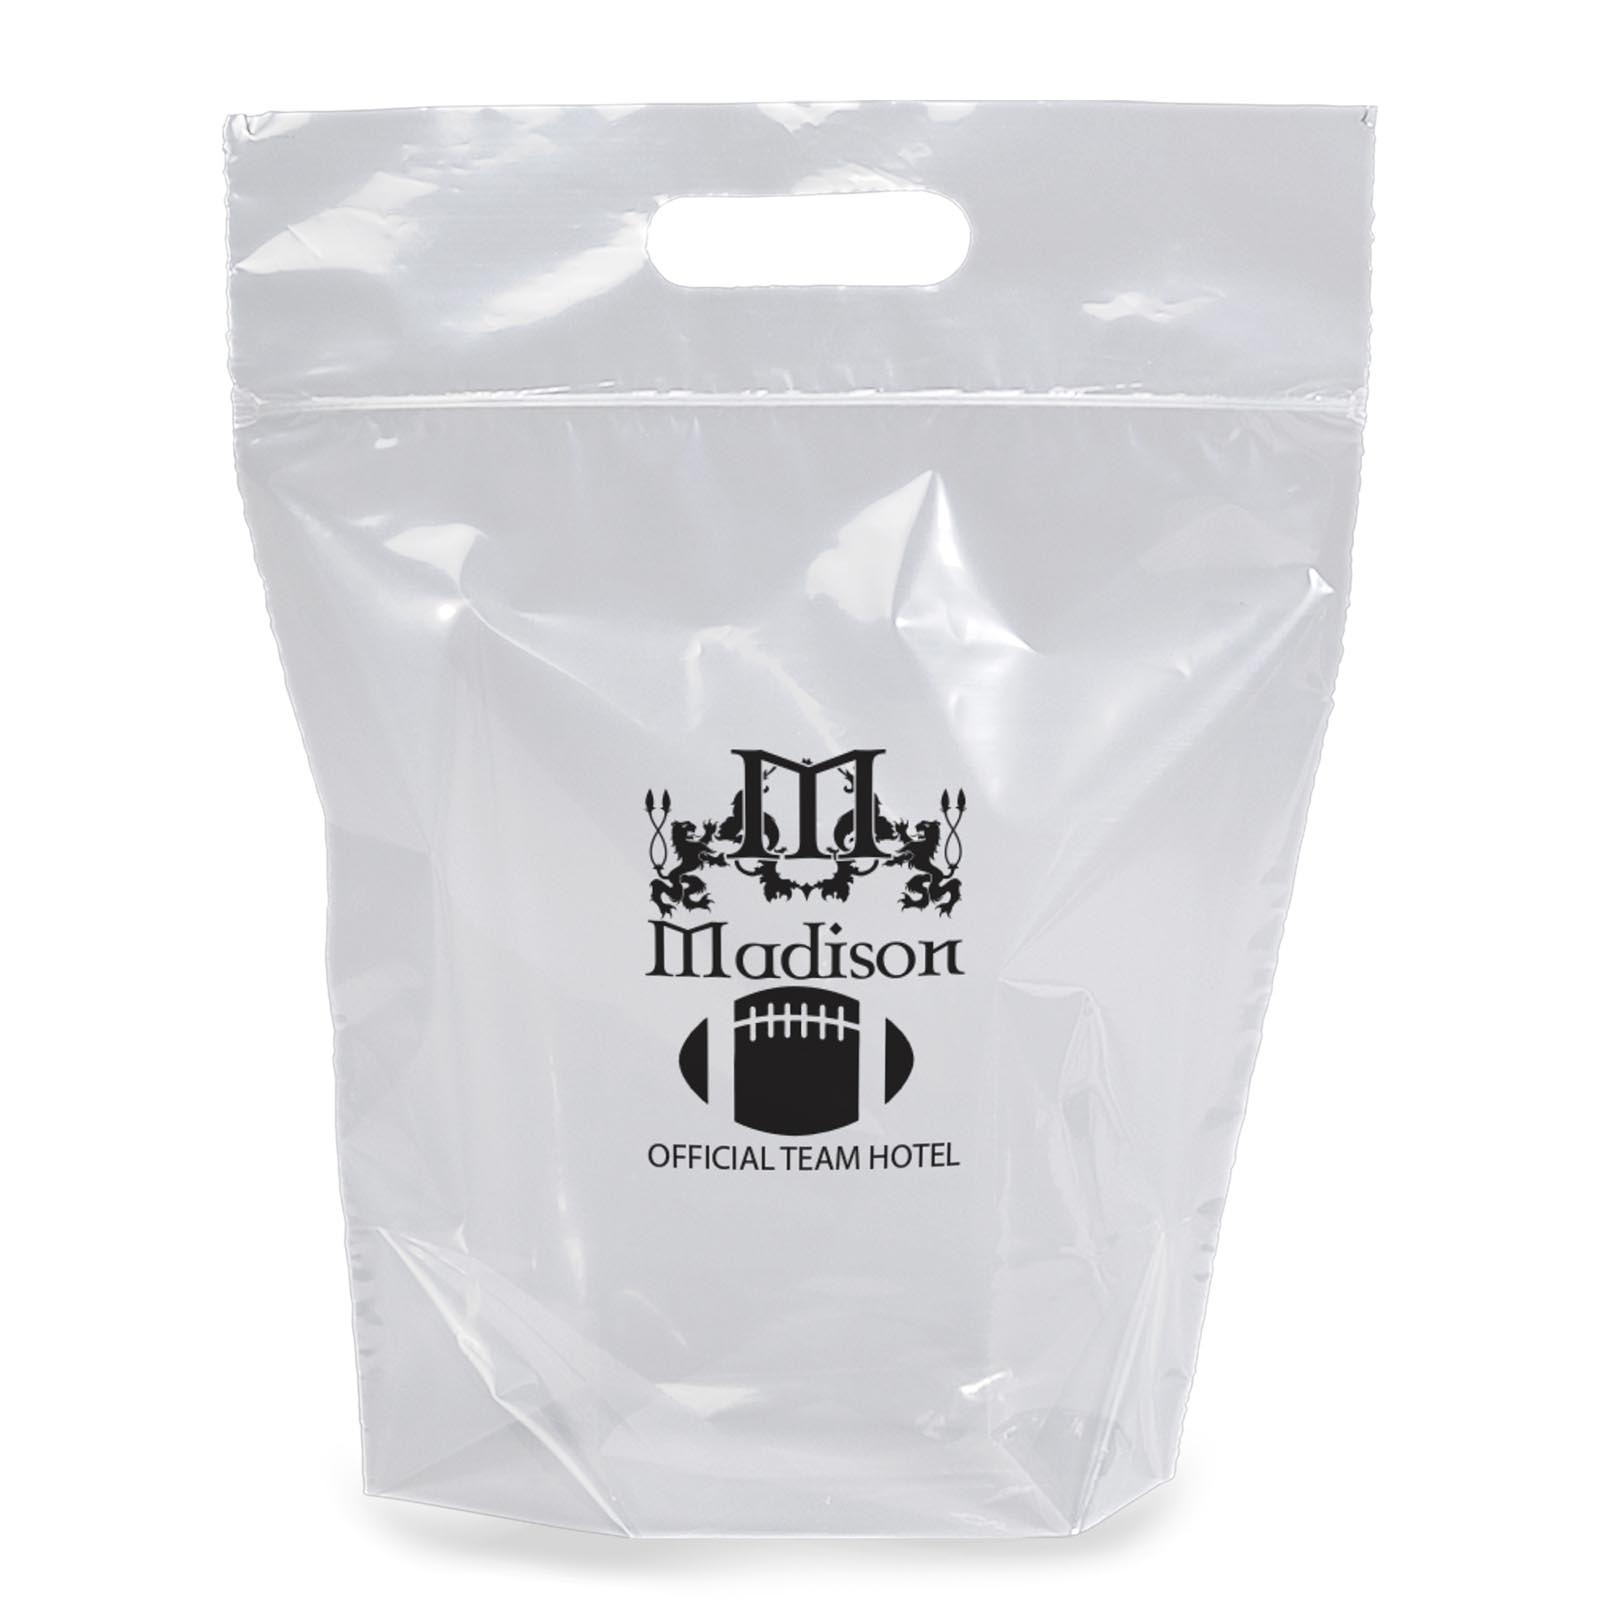 12 x 12 Zip-Close Die Cut Plastic Stadium Bags